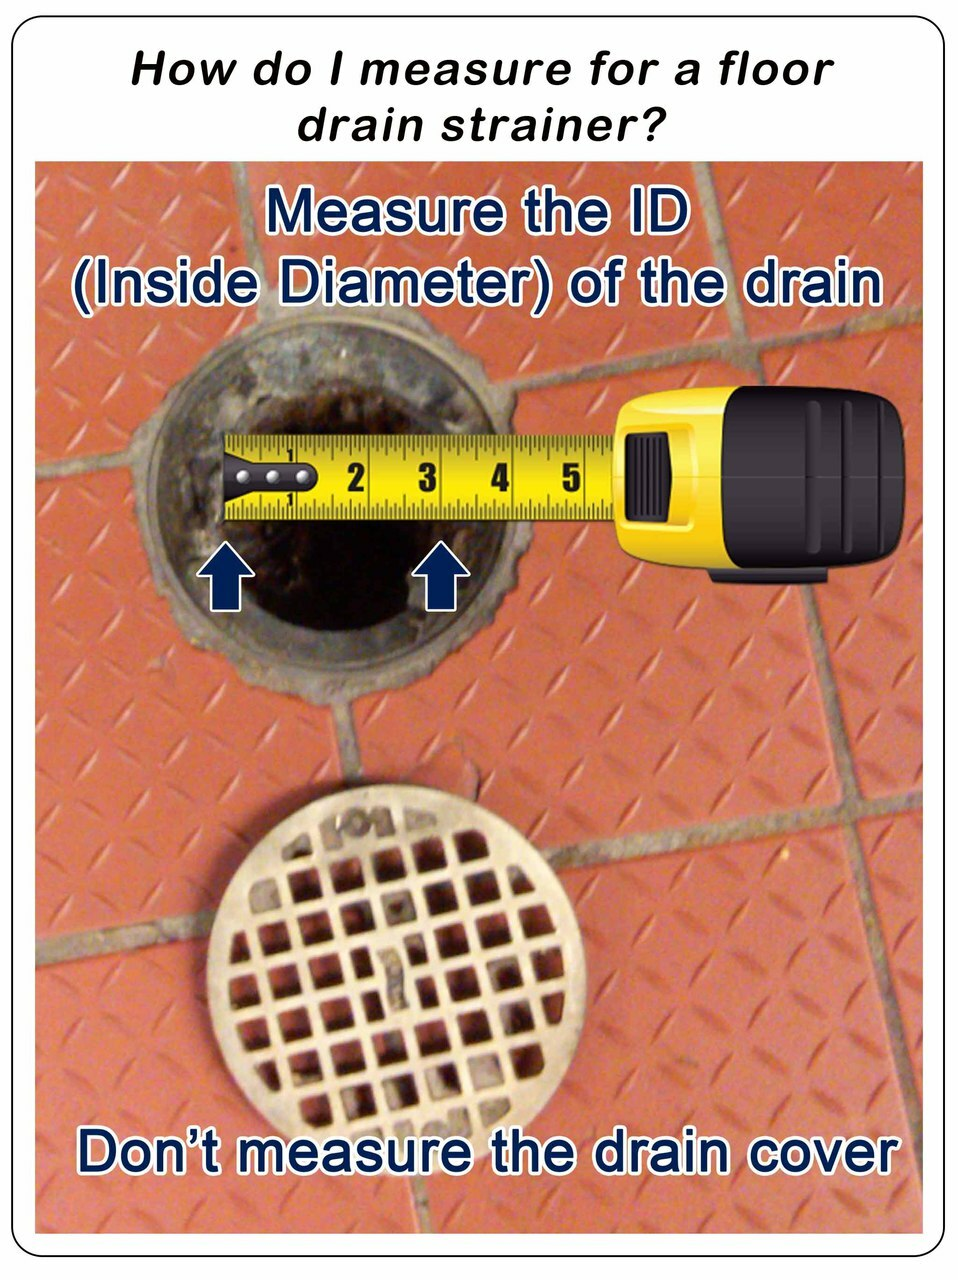 How to measure a floor drain